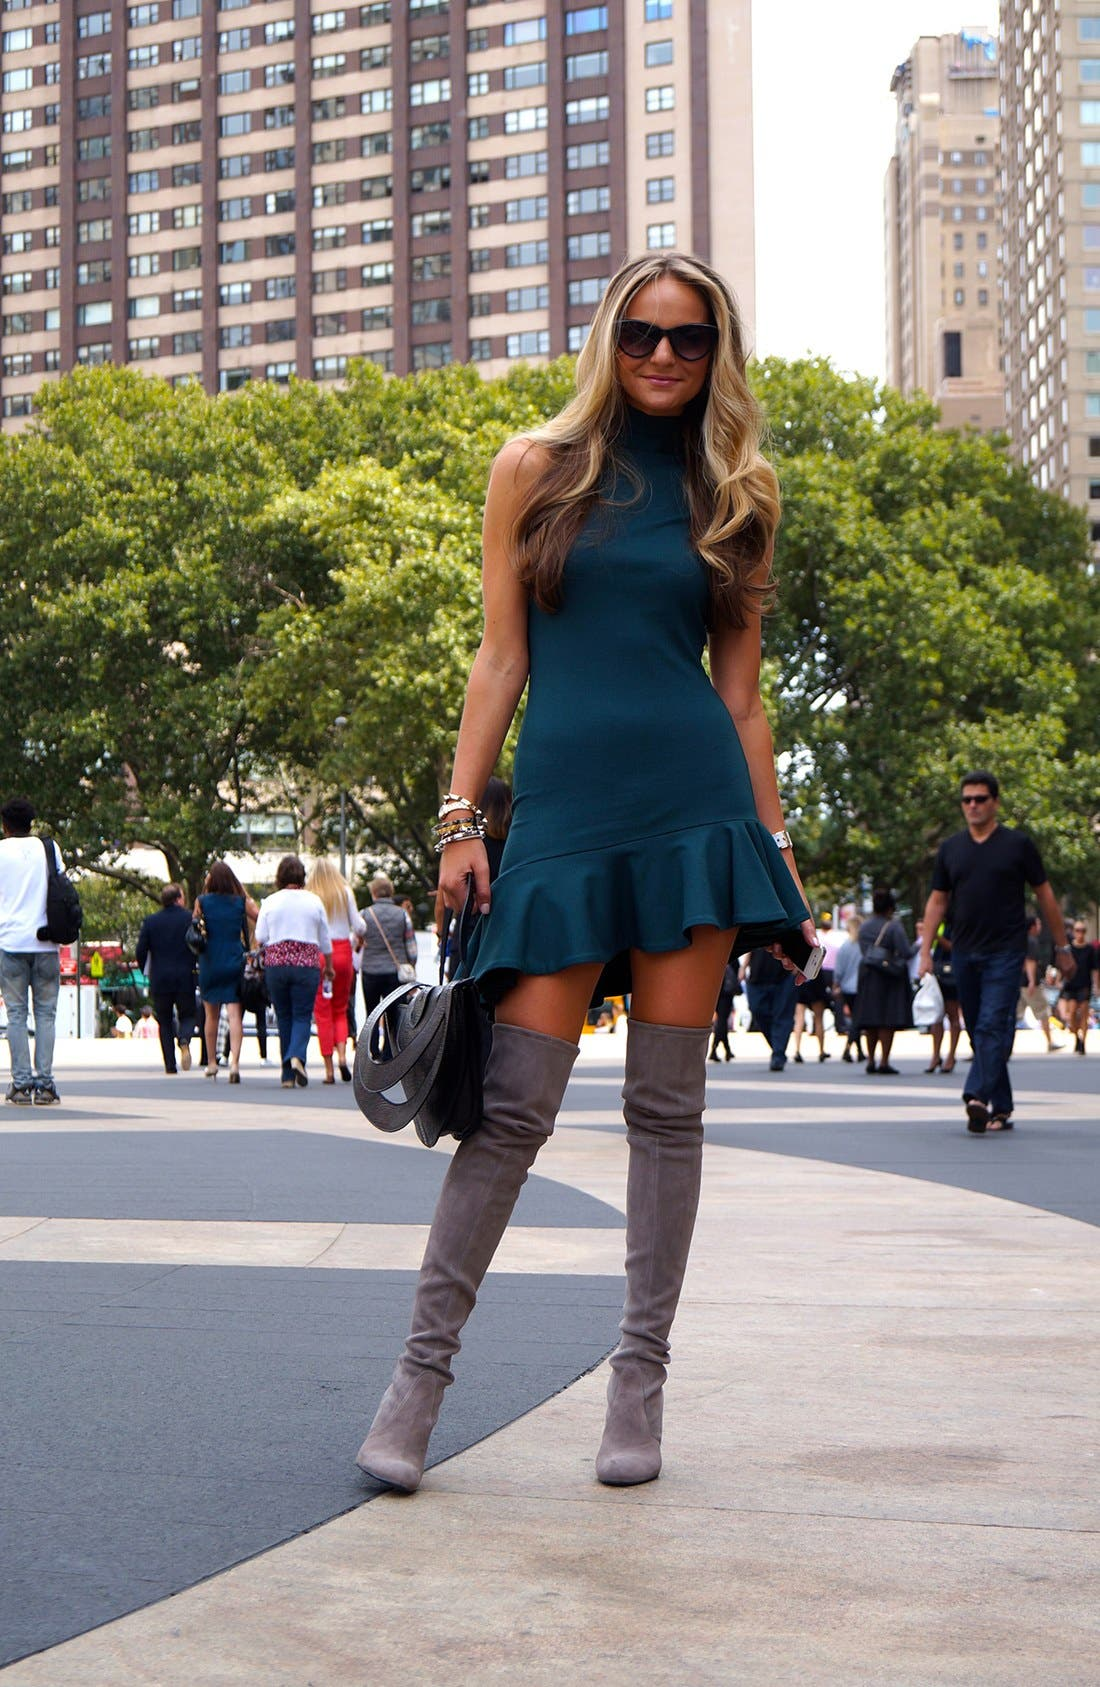 Main Image - Fit & Flare Street Style Look